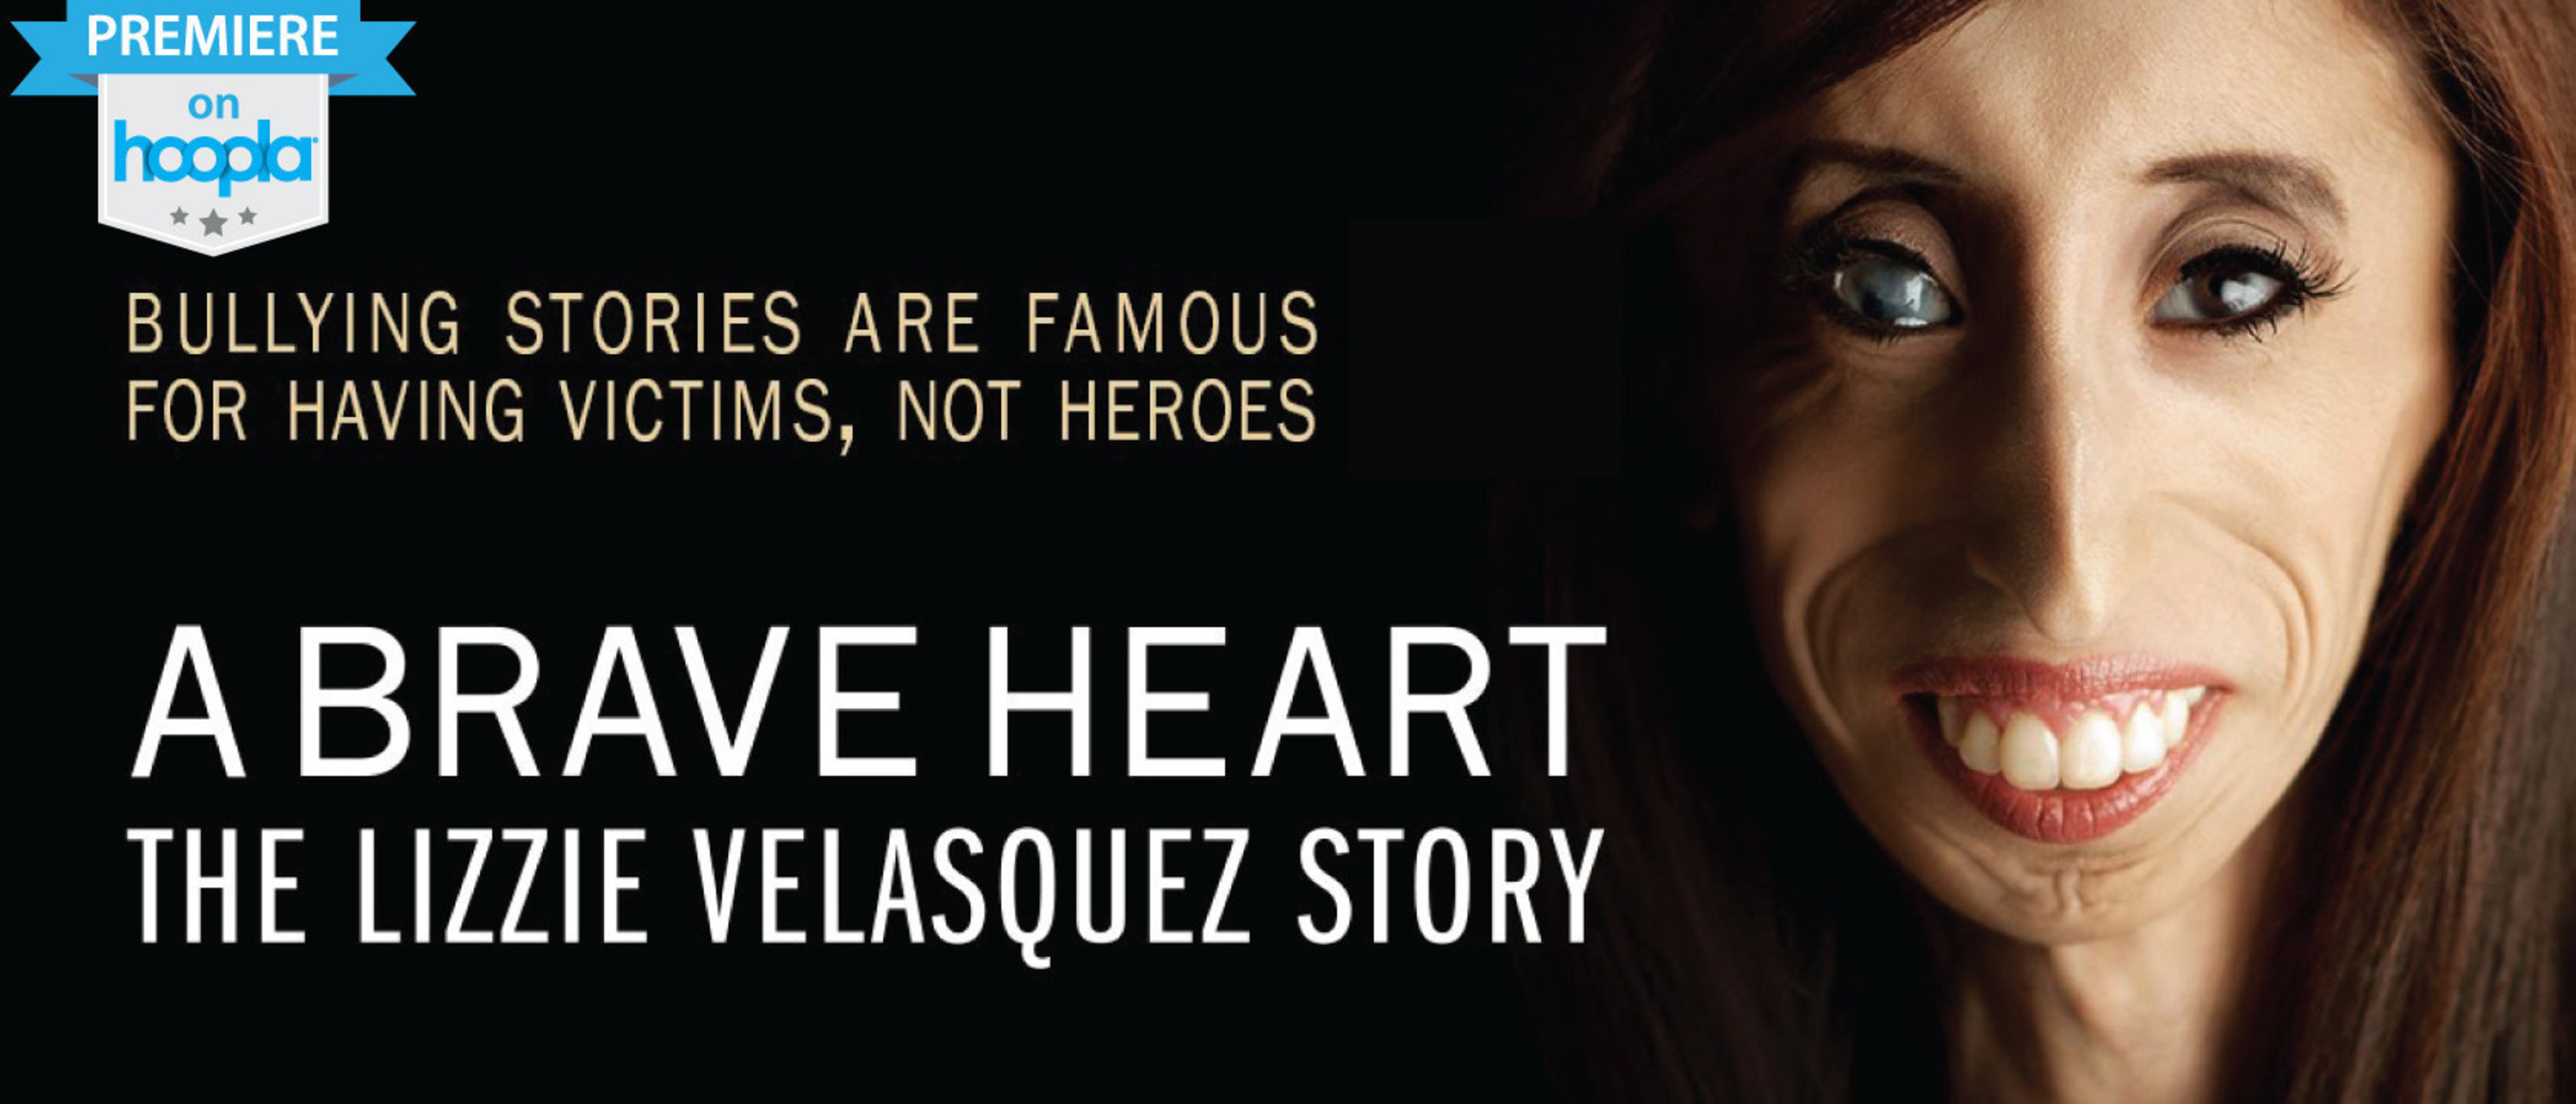 'A Brave Heart: The Lizzie Velasquez Story' available on hoopla digital as the film arrives in theaters on September 25th